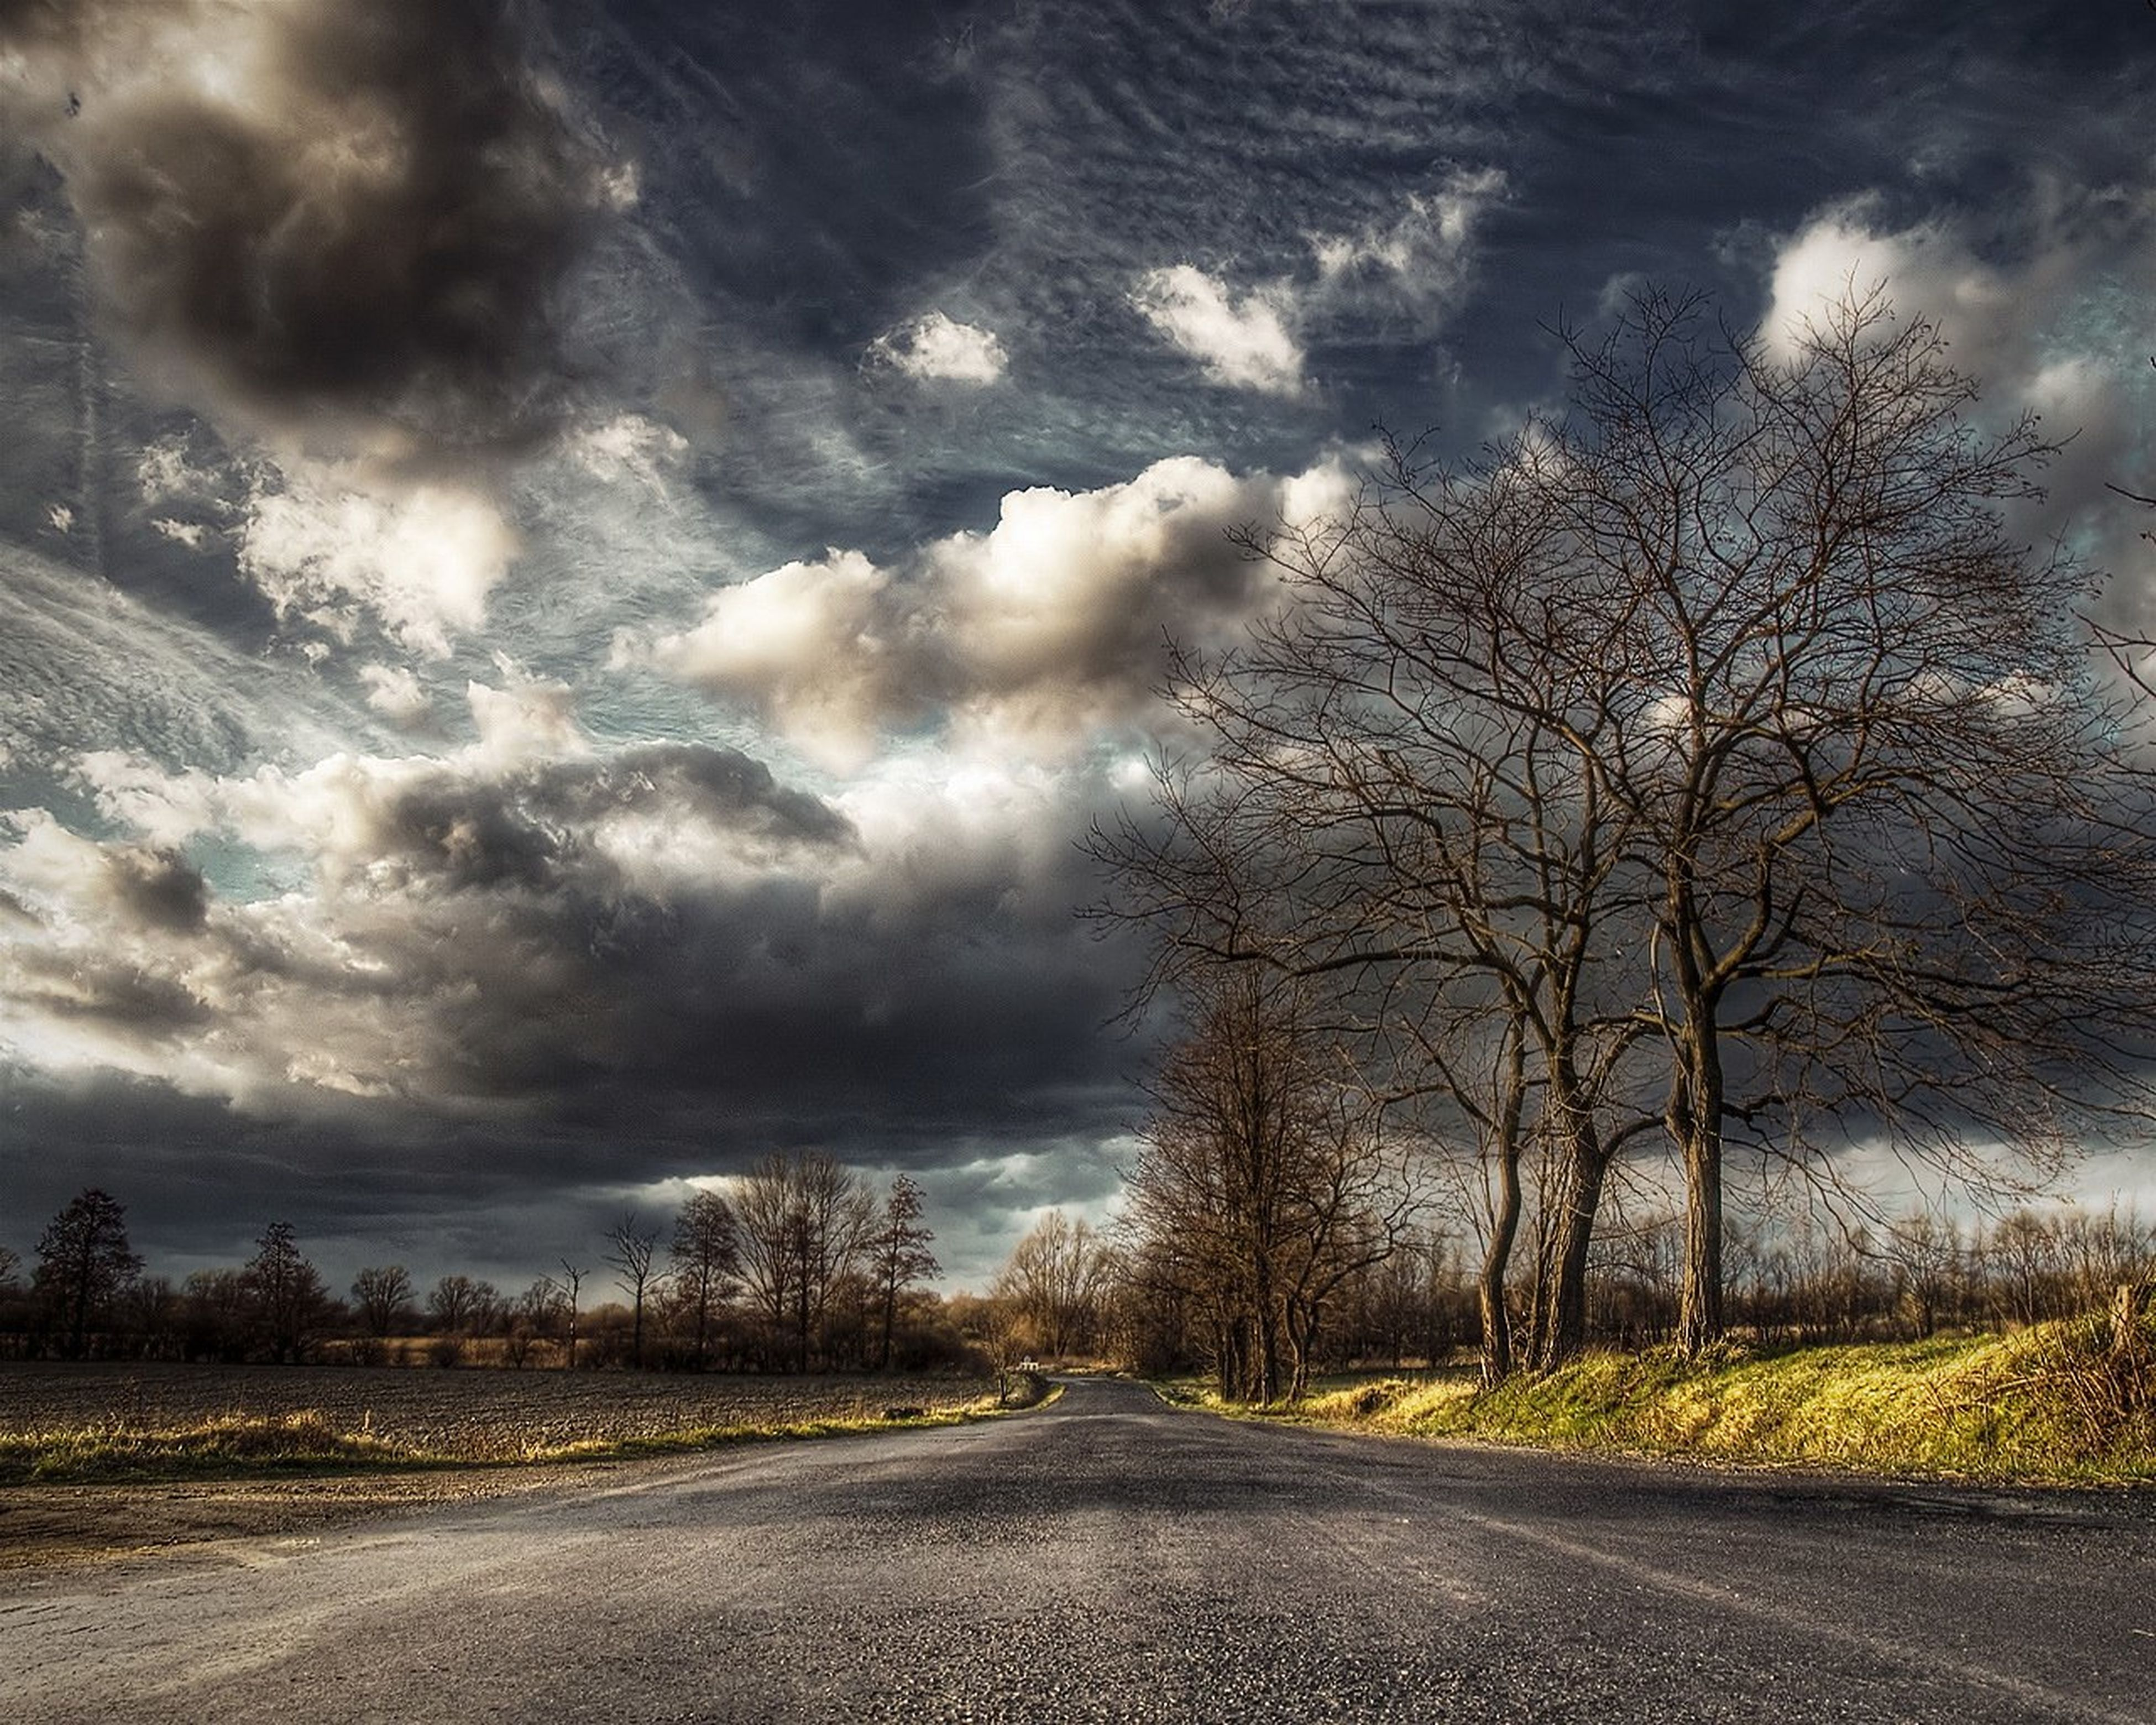 the way forward, sky, road, cloud - sky, transportation, cloudy, diminishing perspective, weather, tree, vanishing point, country road, tranquility, empty road, street, nature, tranquil scene, landscape, cloud, overcast, scenics